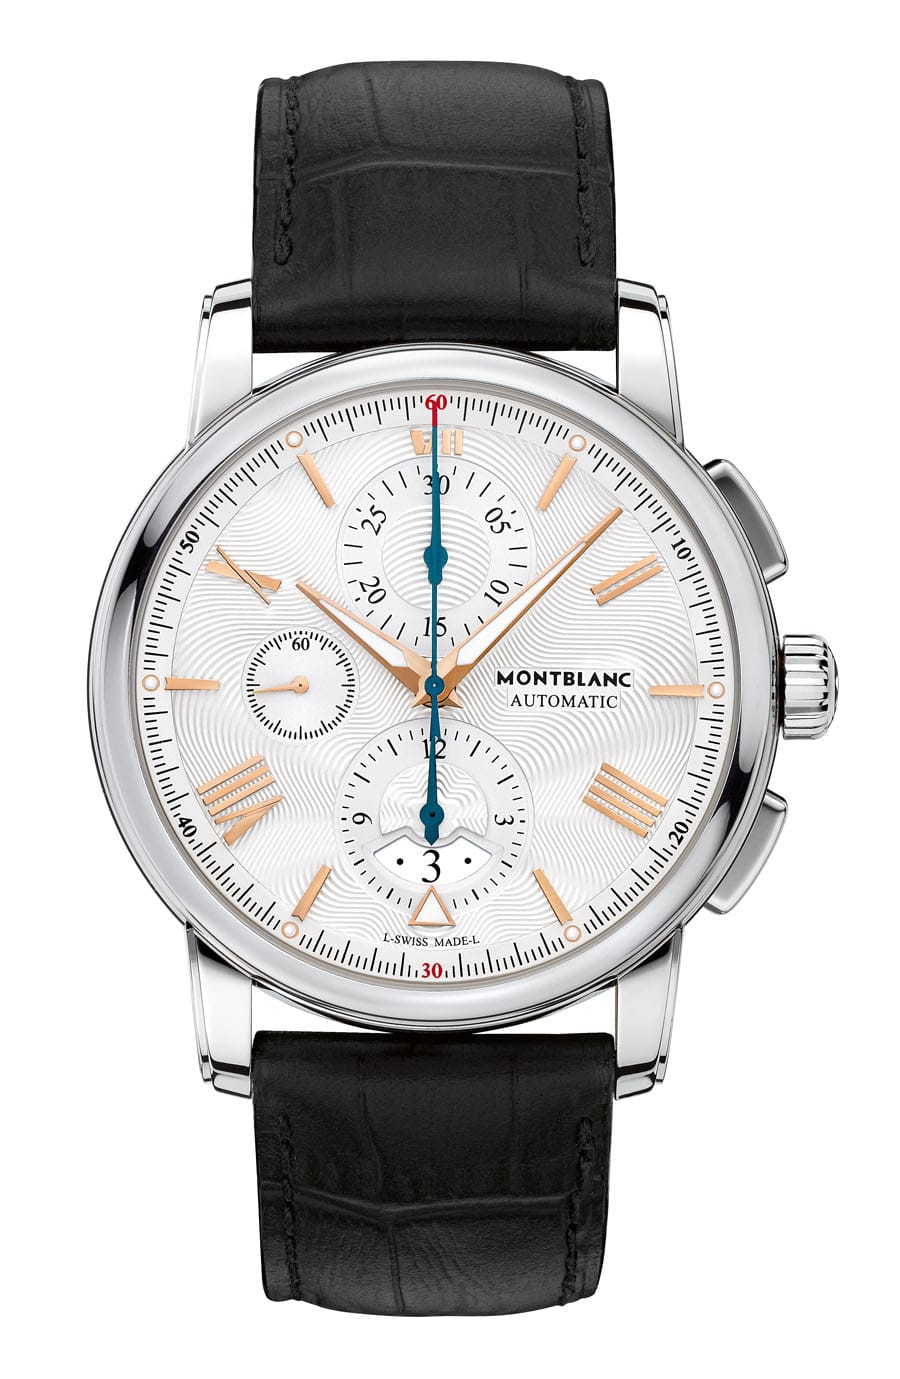 Montblanc: 4810 Chronograph Automatic